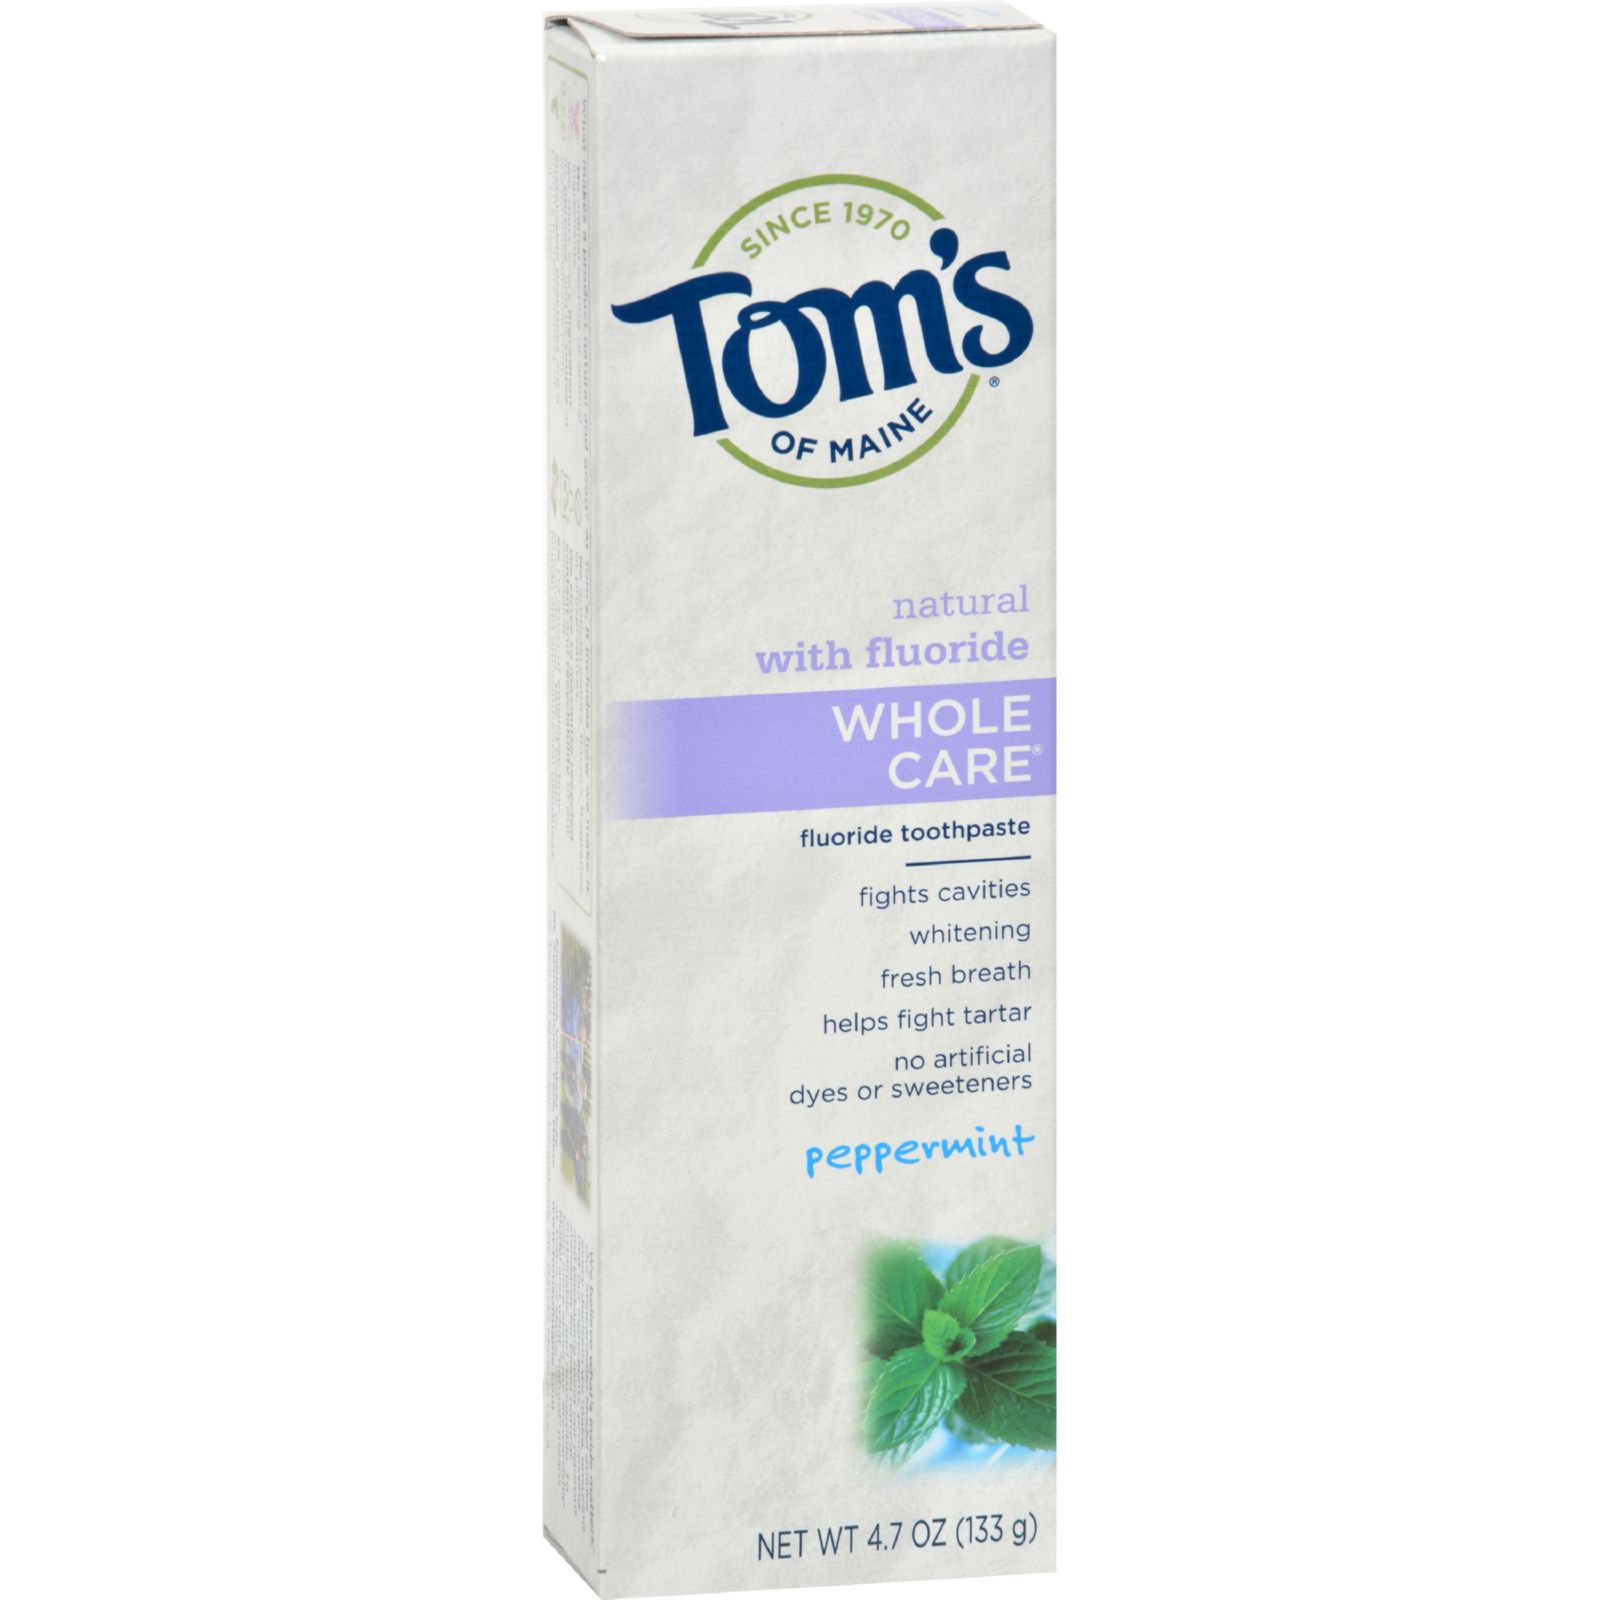 Tom's of Maine Whole Care Toothpaste